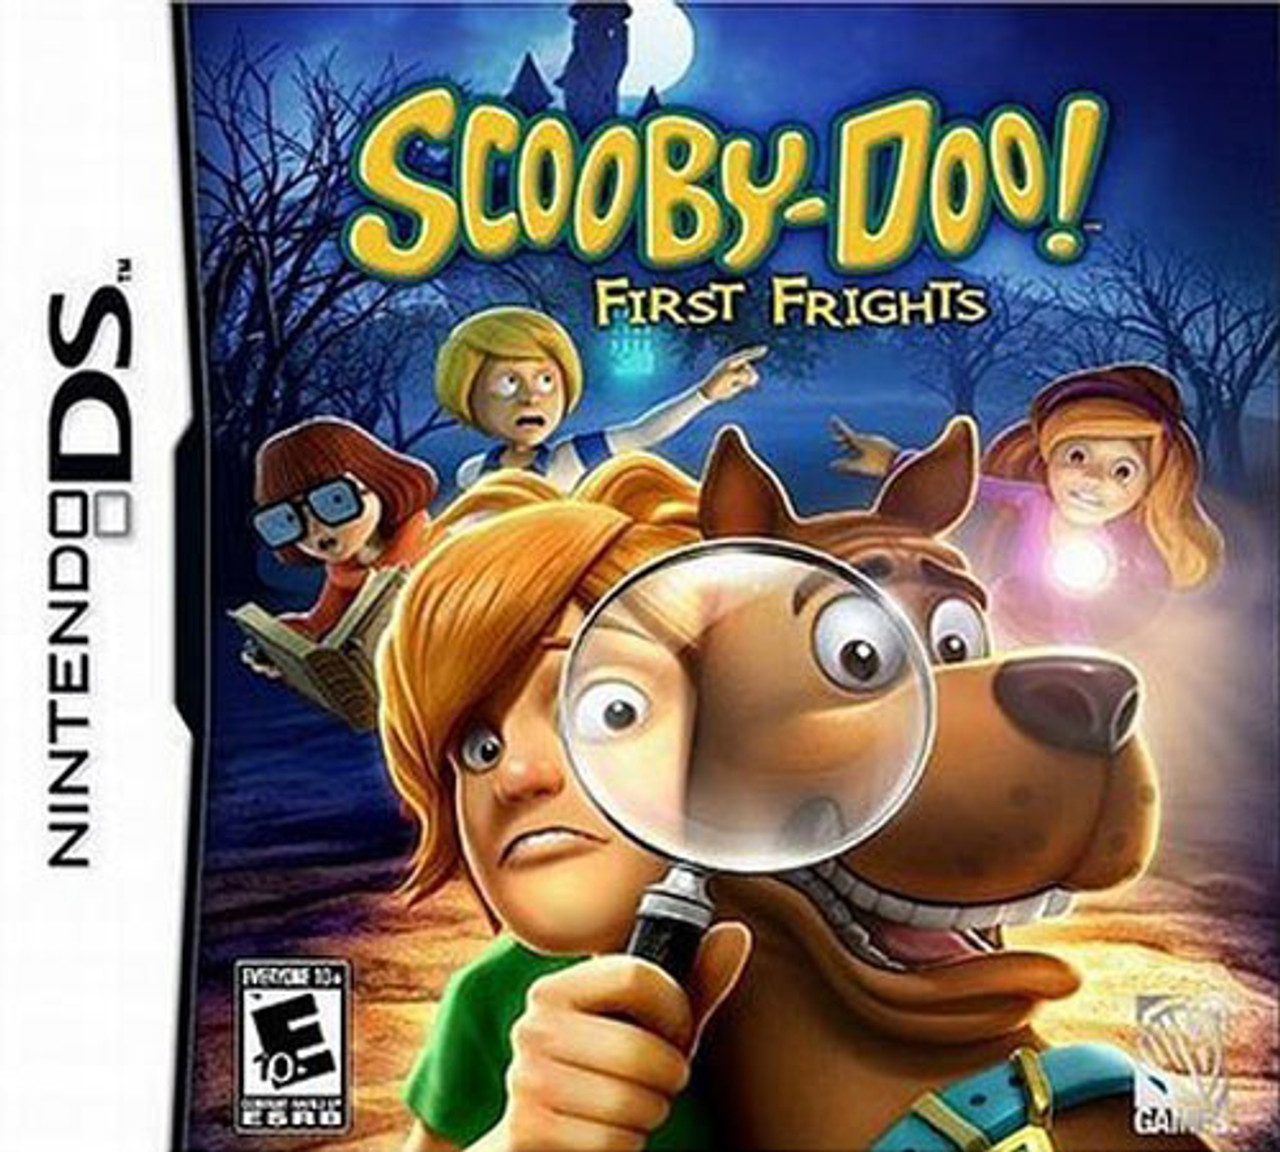 Scooby Doo First Frights Nintendo Ds Game For Sale